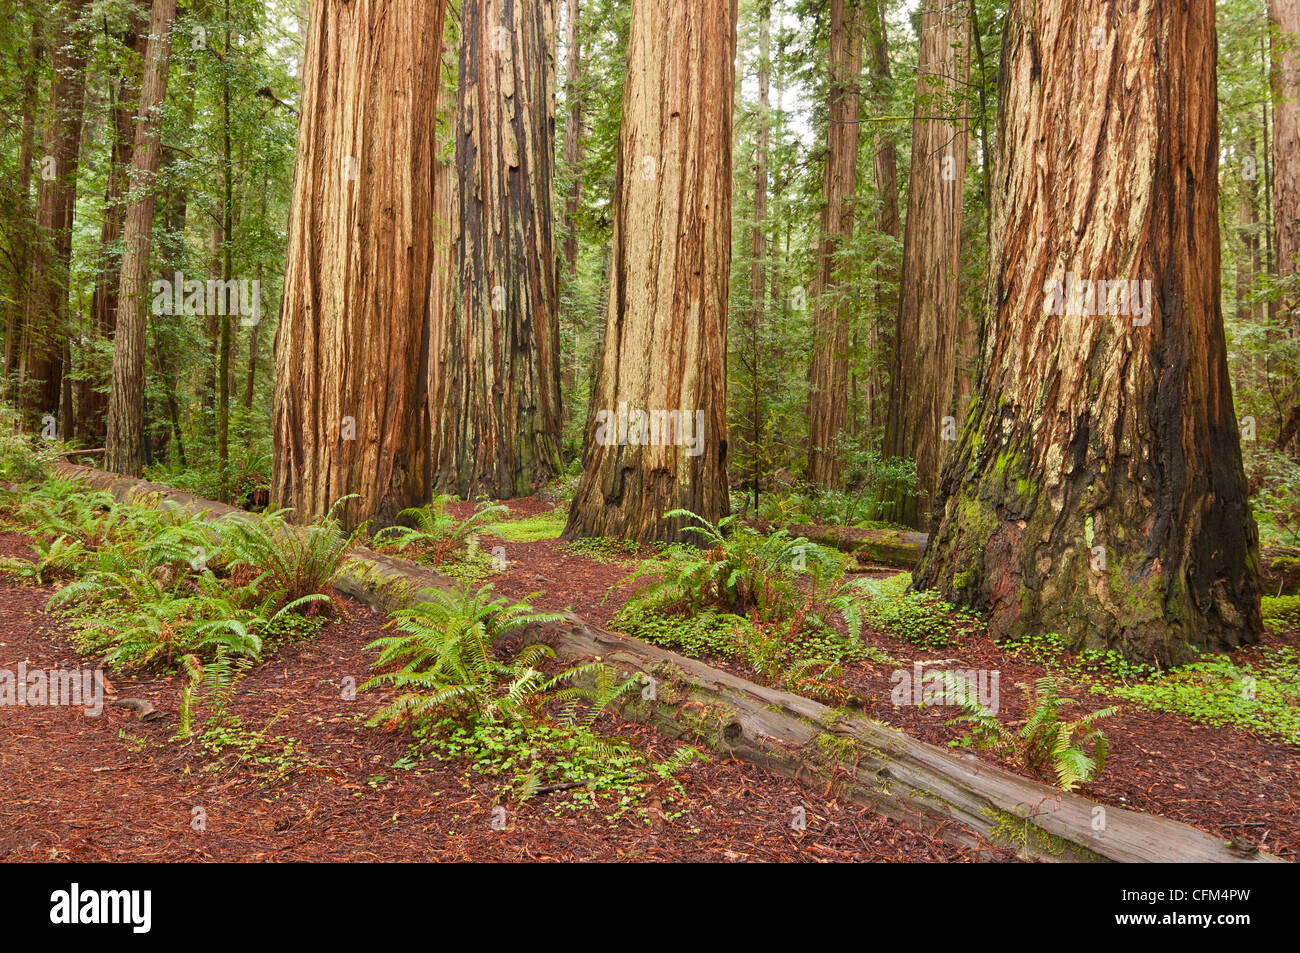 The beautiful and massive giant redwoods, Sequoia sempervirens located in the Jedediah Smith Redwoods State Park Stock Photo